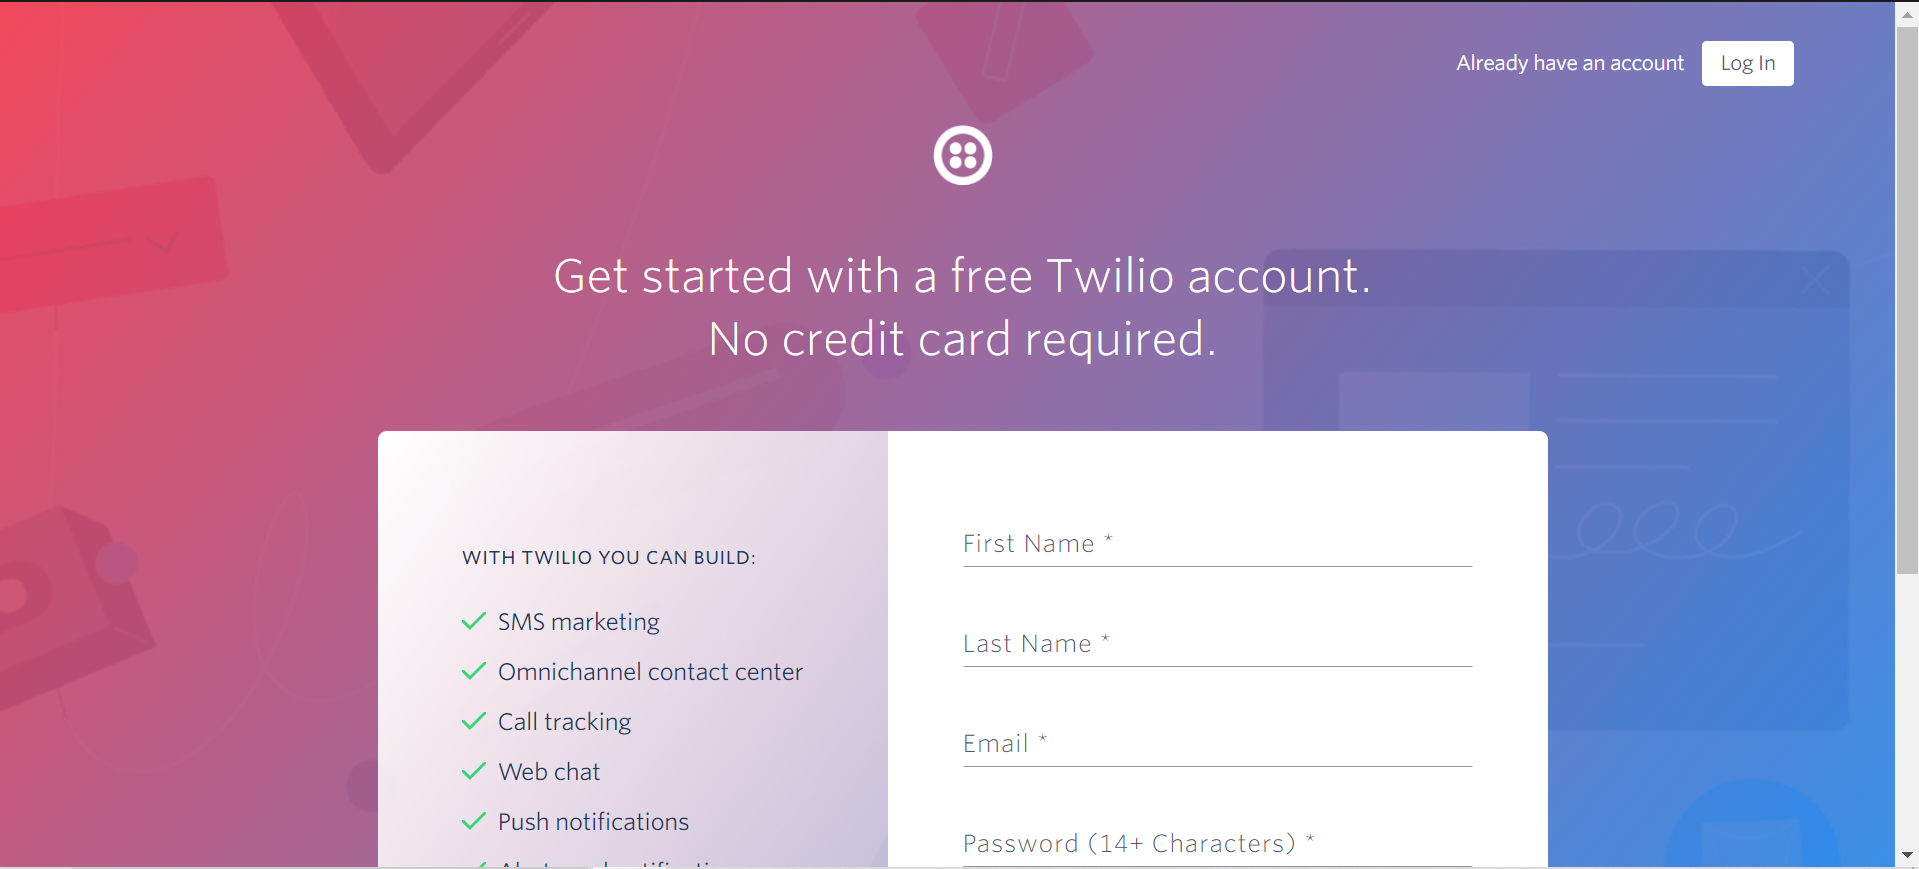 Sign up page for Twilio